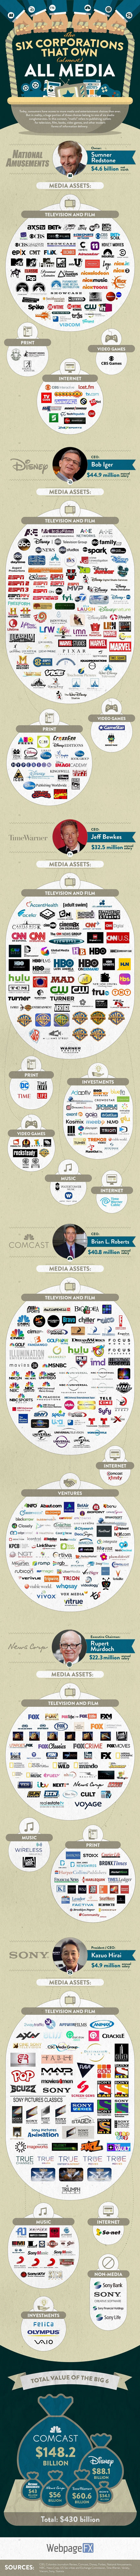 The 6 Companies That Own All Media